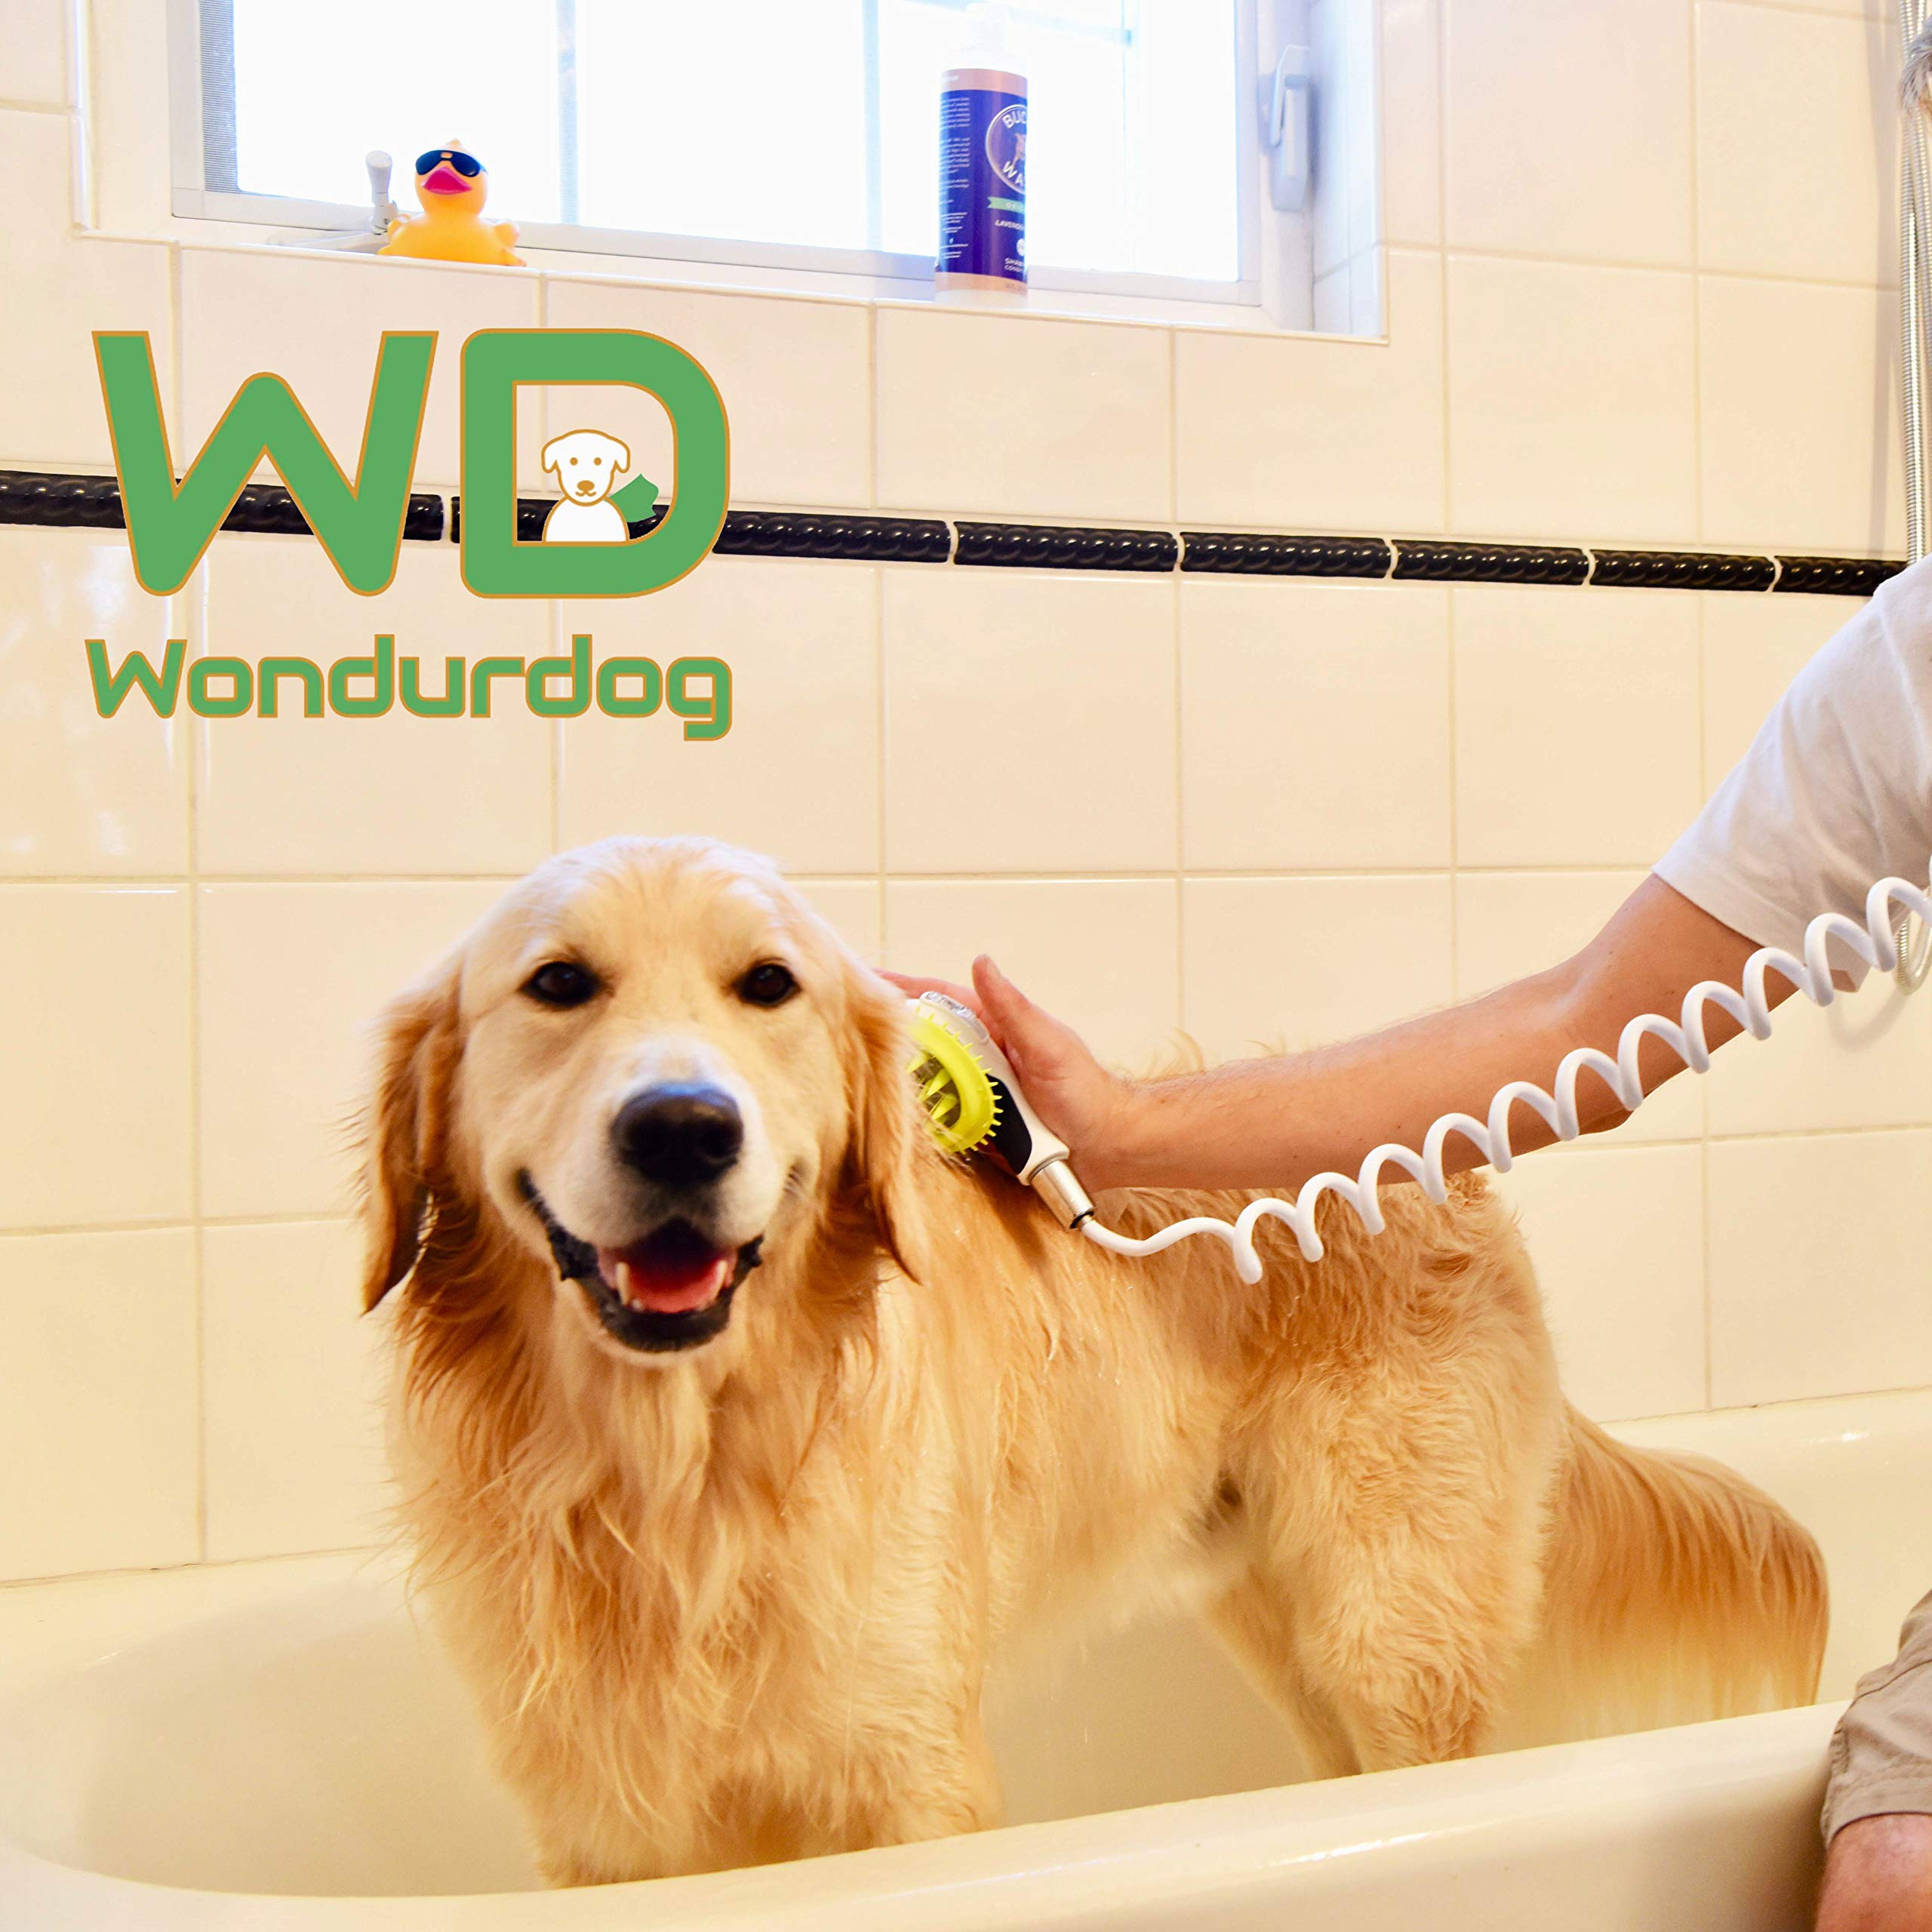 Quality Sink Faucet Pet Wash Kit | Innovative Shower Brush Head w/ Splash Shield | 8 ft Recoil Hose & Metal Faucet Adapter | Kitchen, Bathroom, Utility and Laundry Sink | Fast and Easy Dog Bath System by Wondurdog (Image #1)